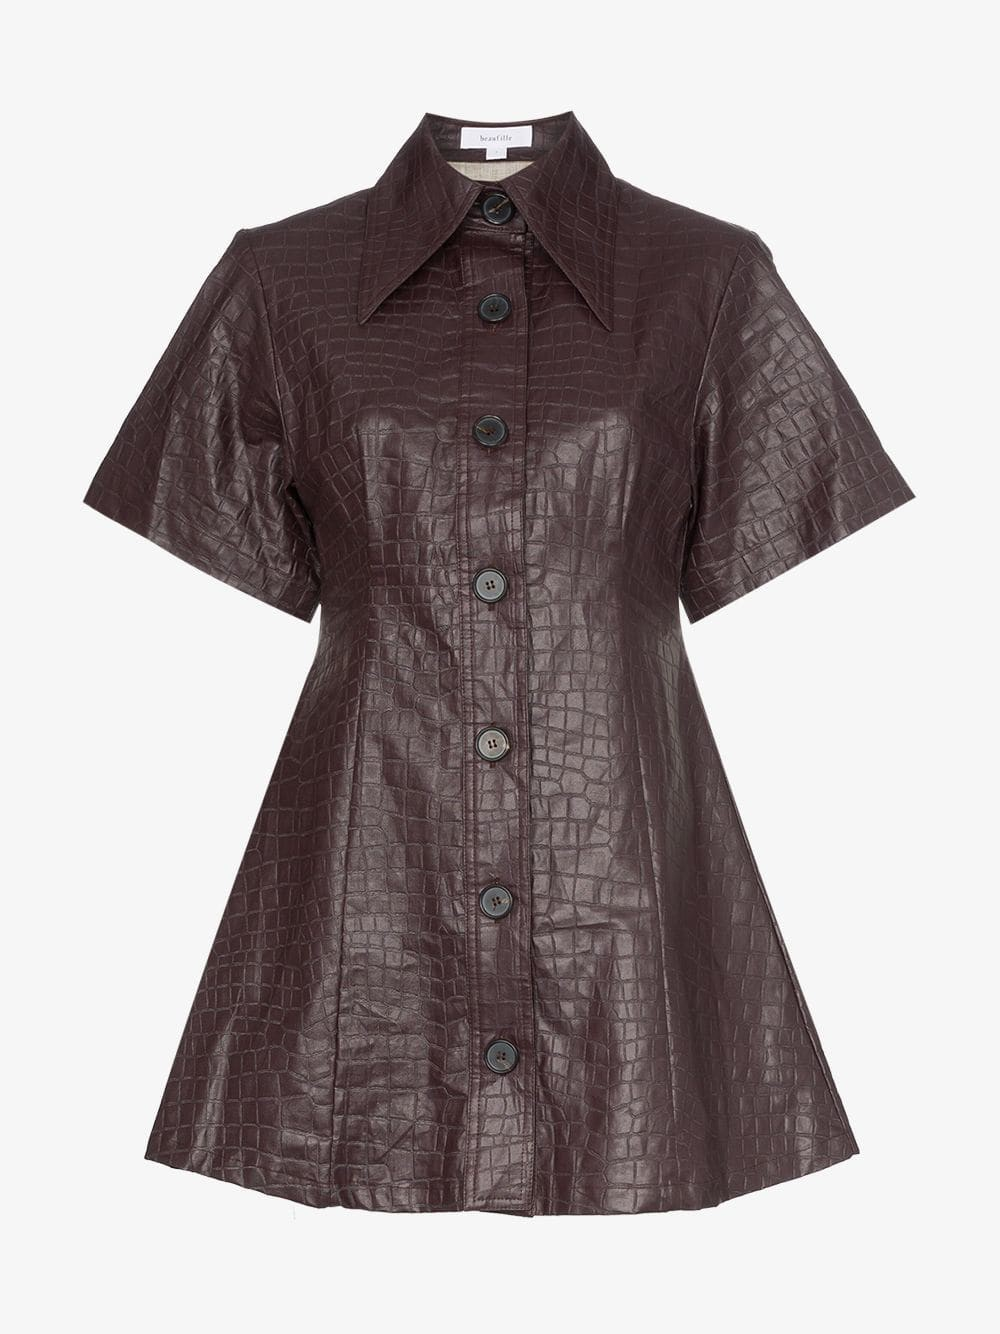 Beaufille Piper crocodile-embossed faux leather shirt dress in purple